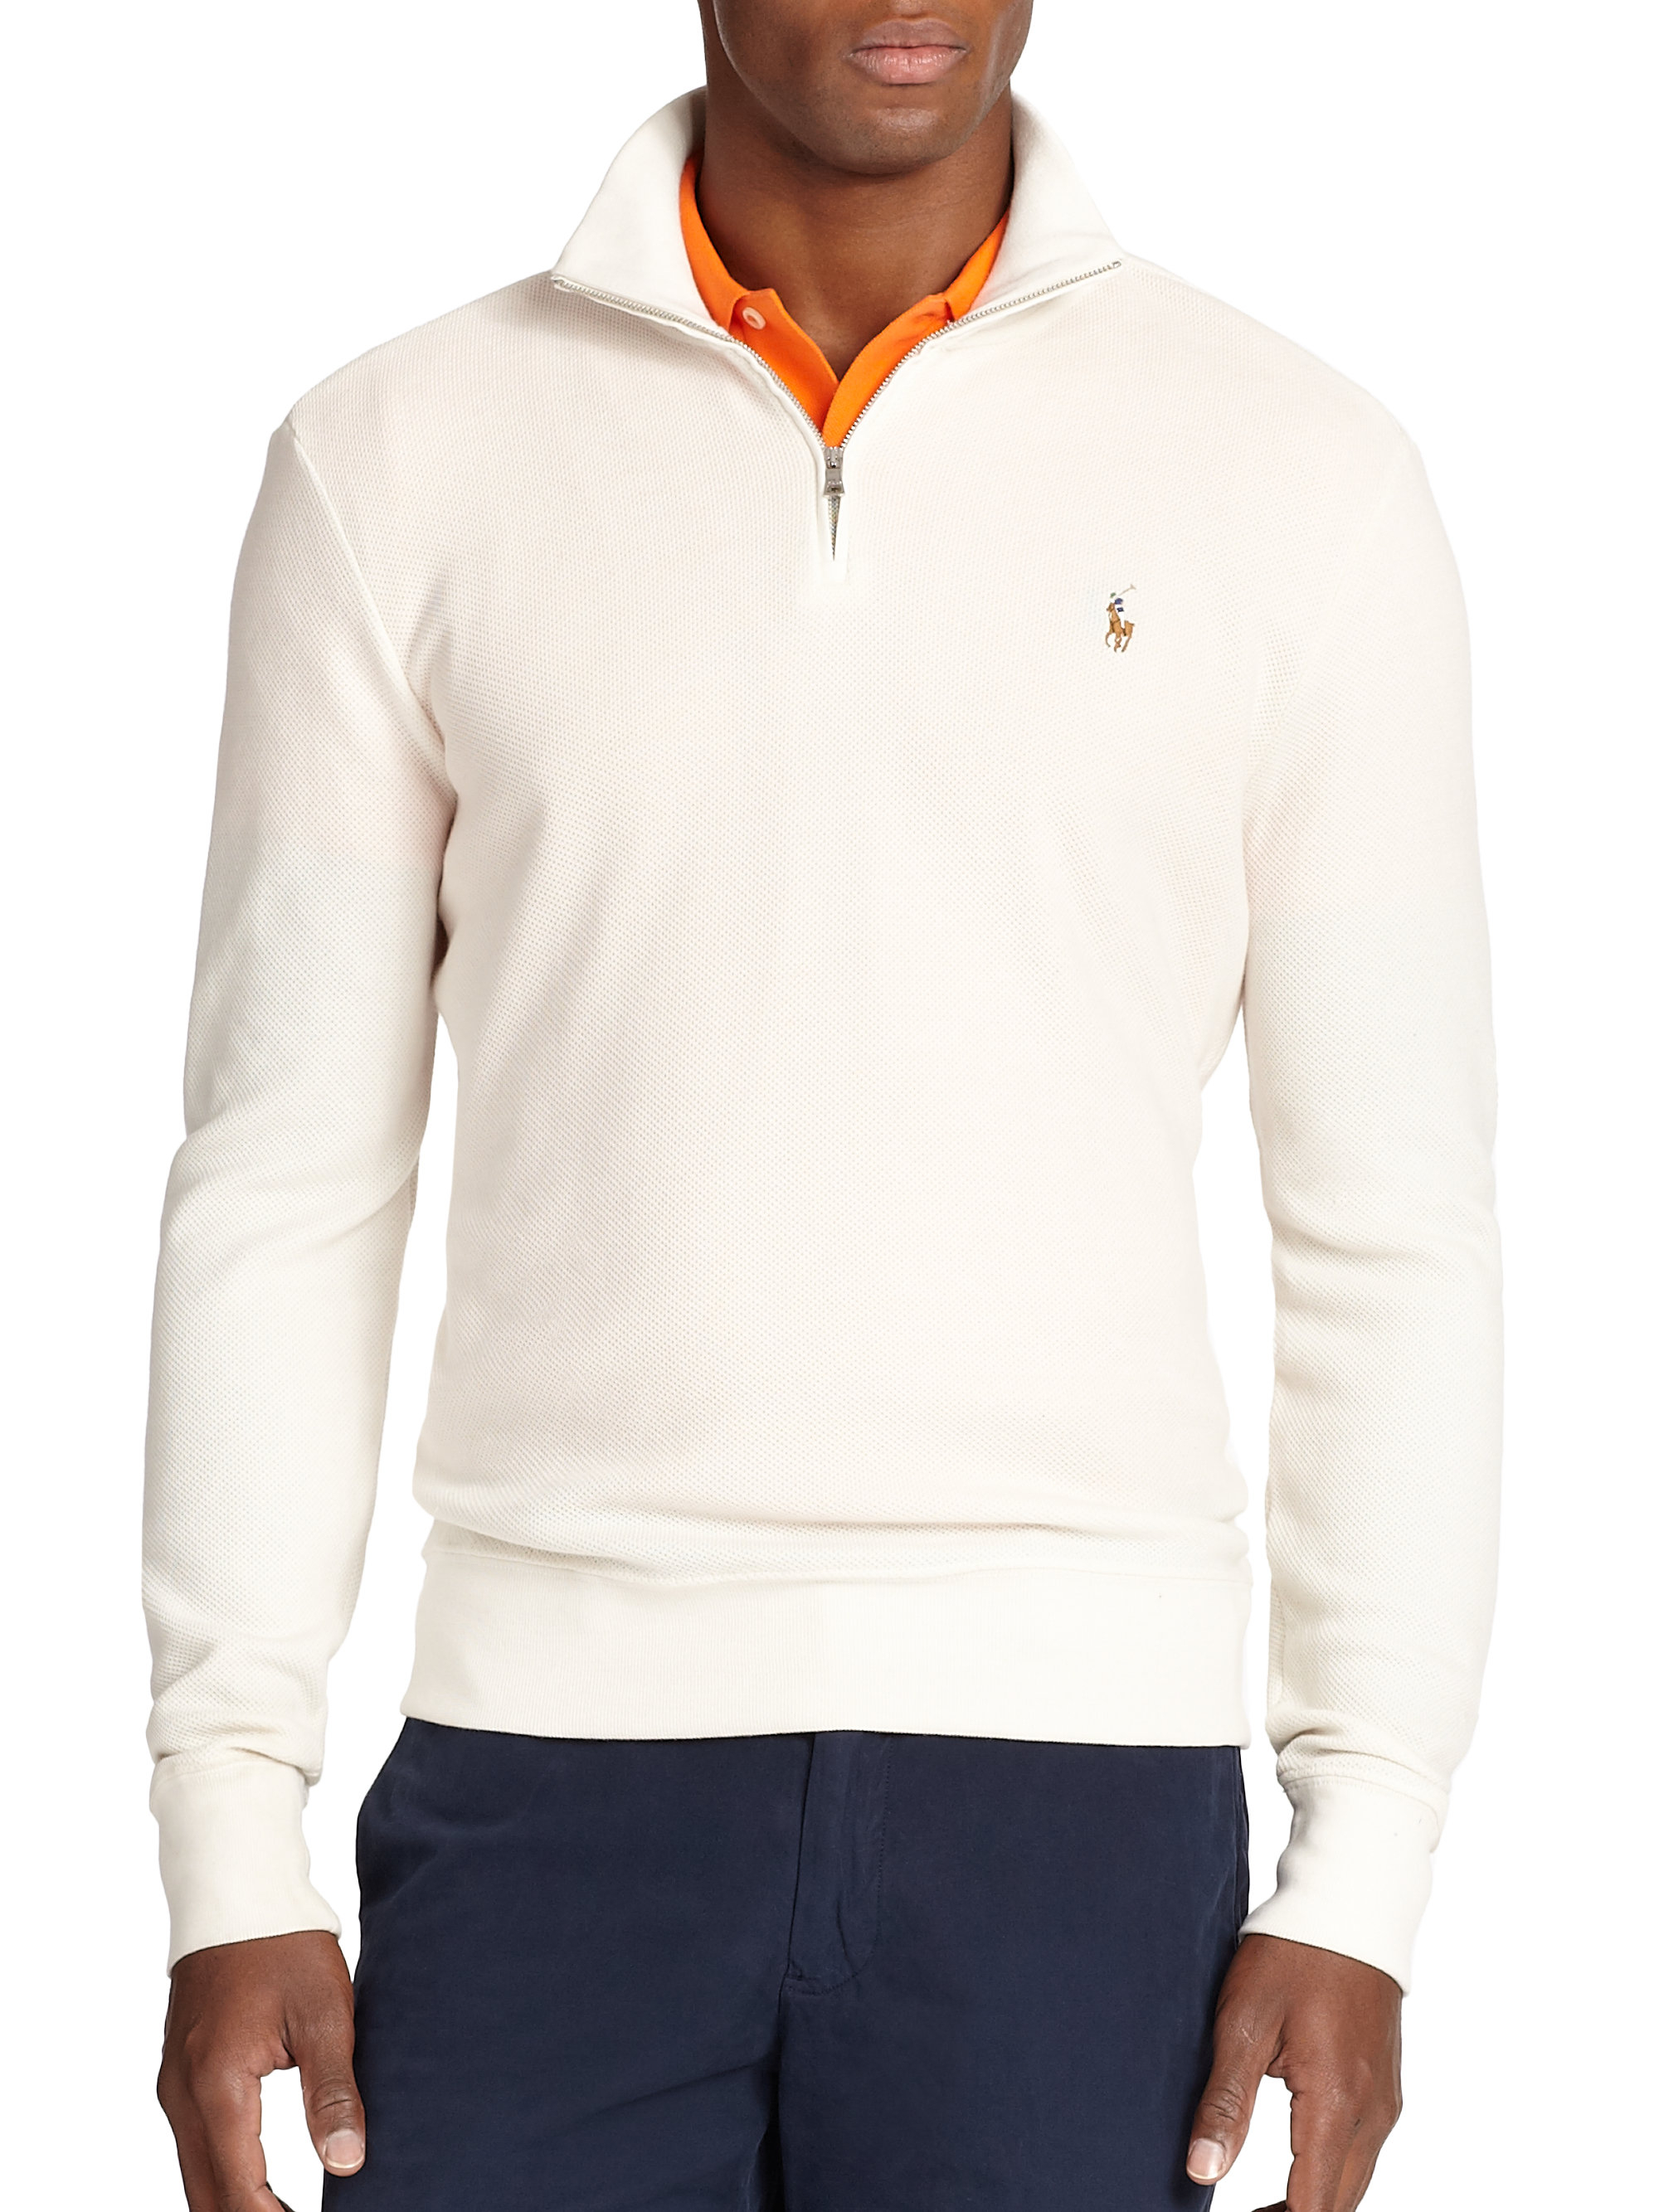 polo ralph lauren pima half zip pullover in white for men lyst. Black Bedroom Furniture Sets. Home Design Ideas